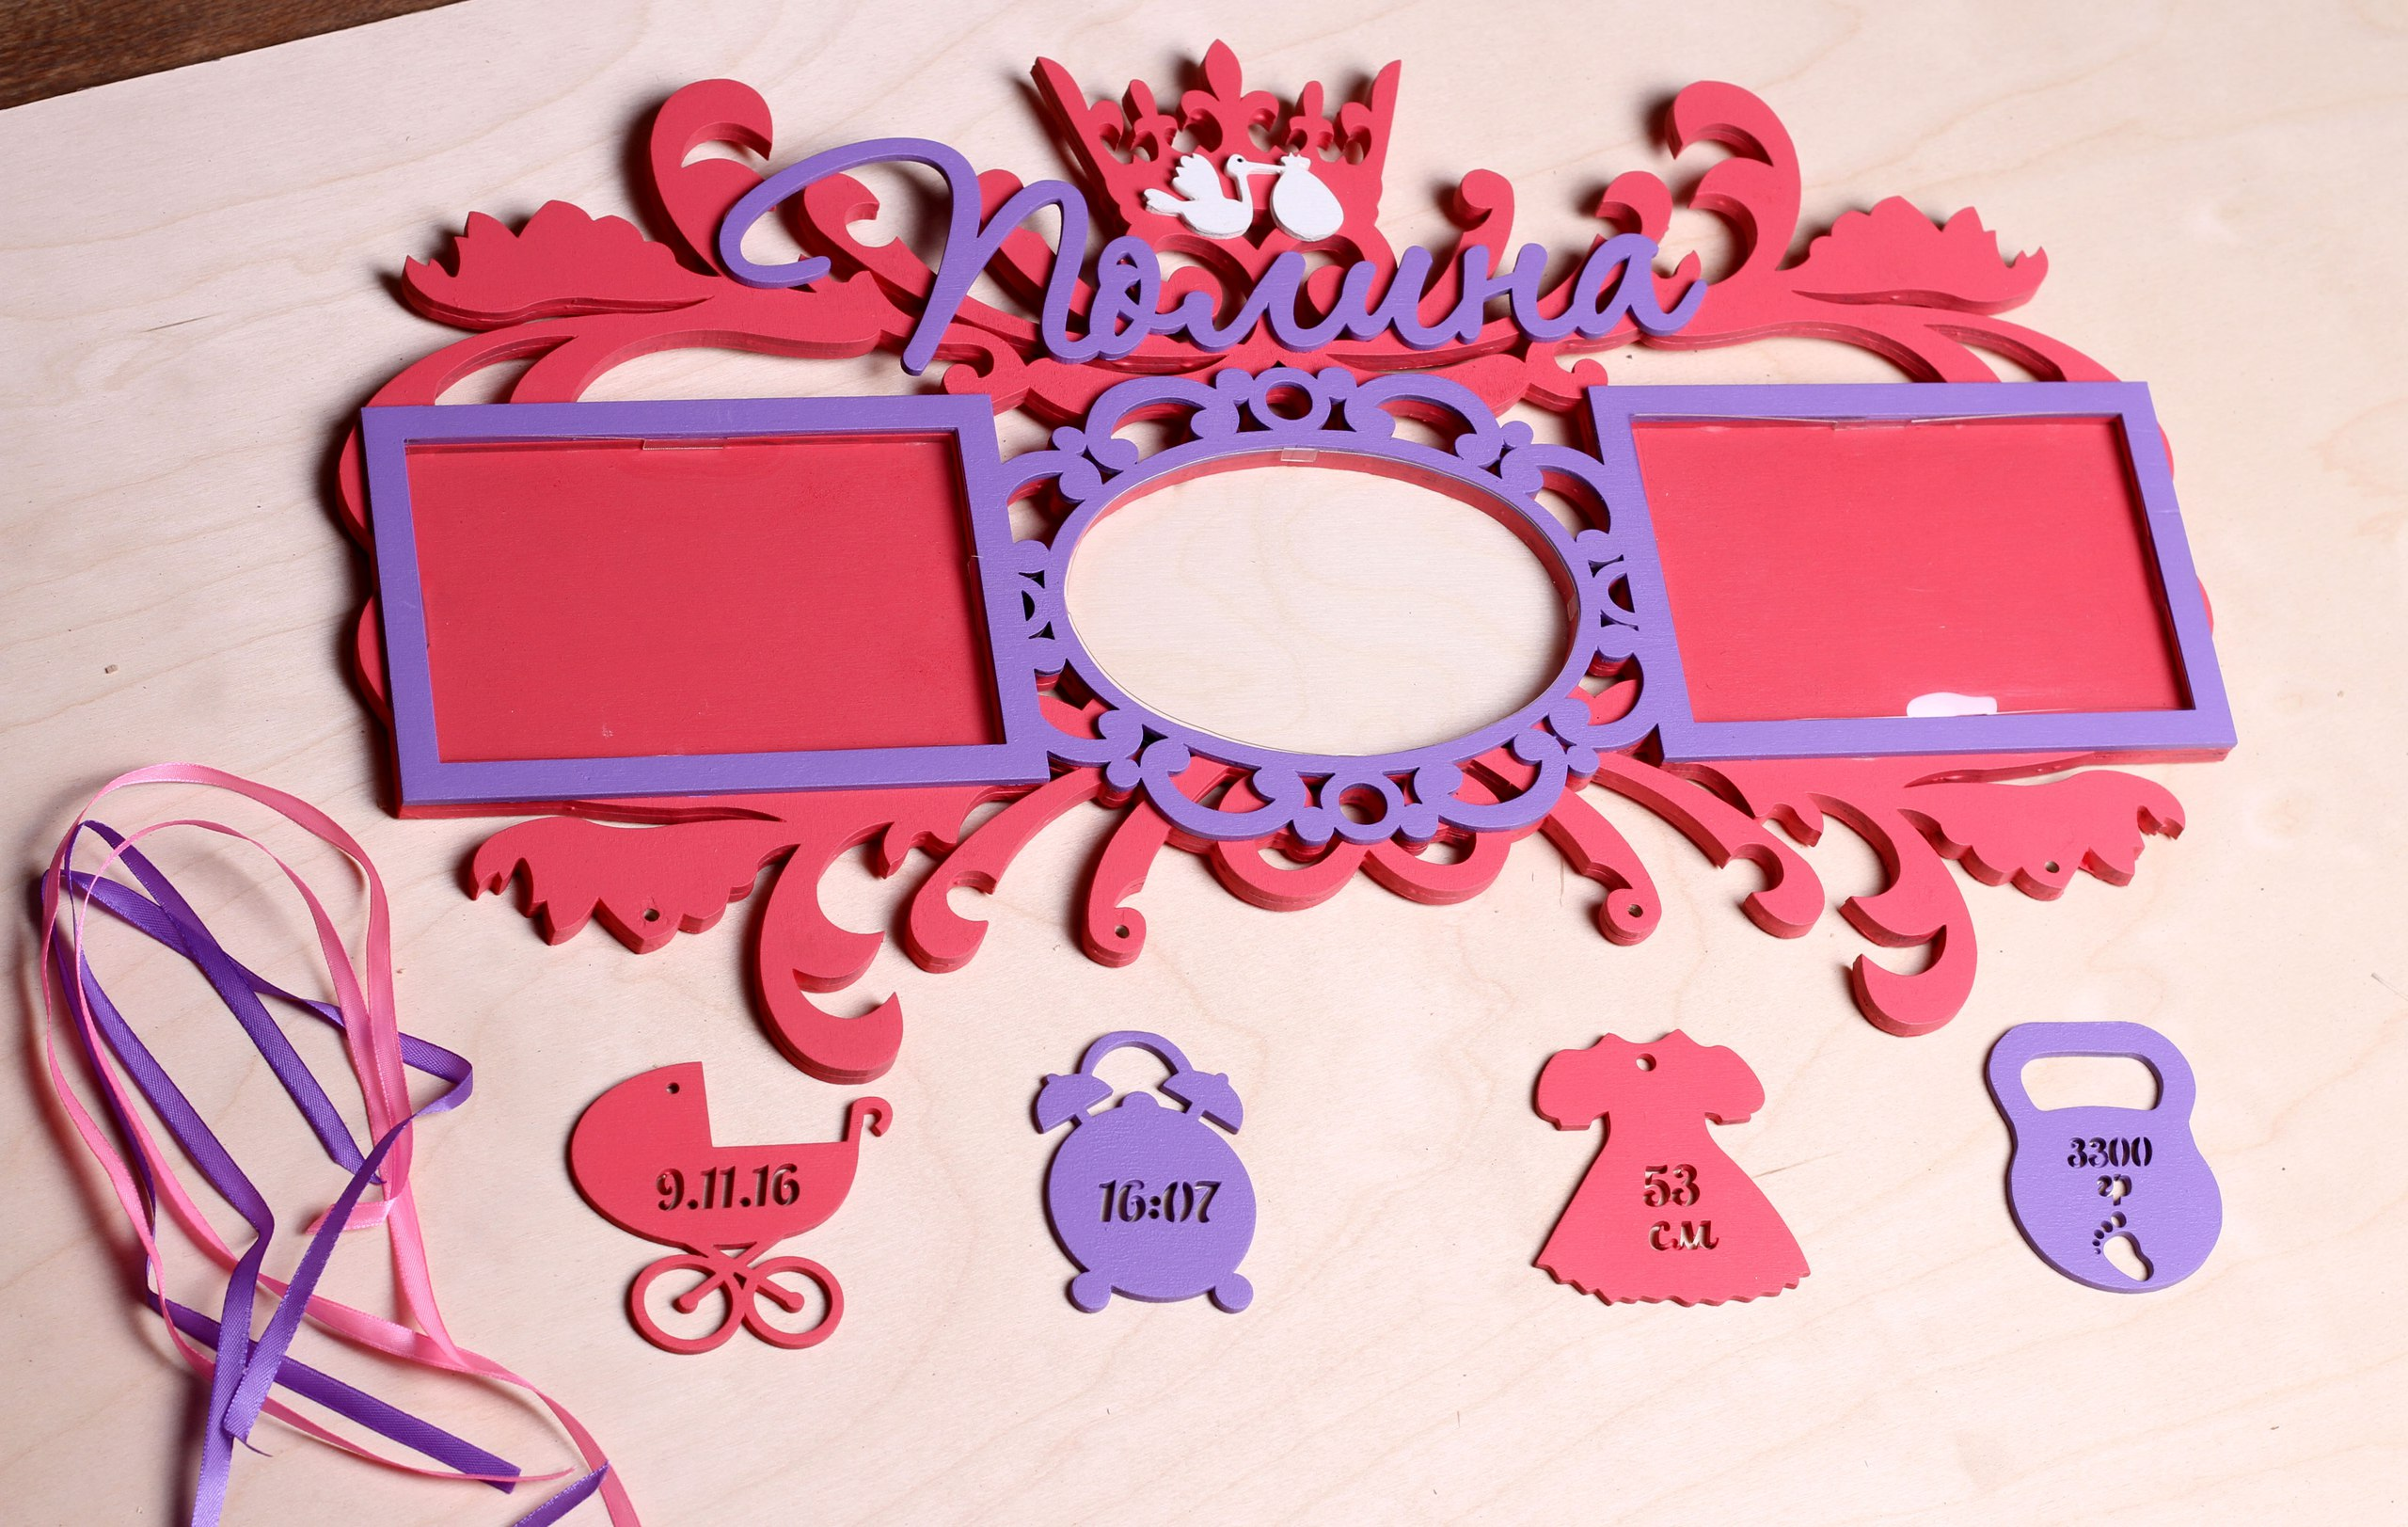 Laser Cut Mirror Patterned Photo Frame Free CDR Vectors Art